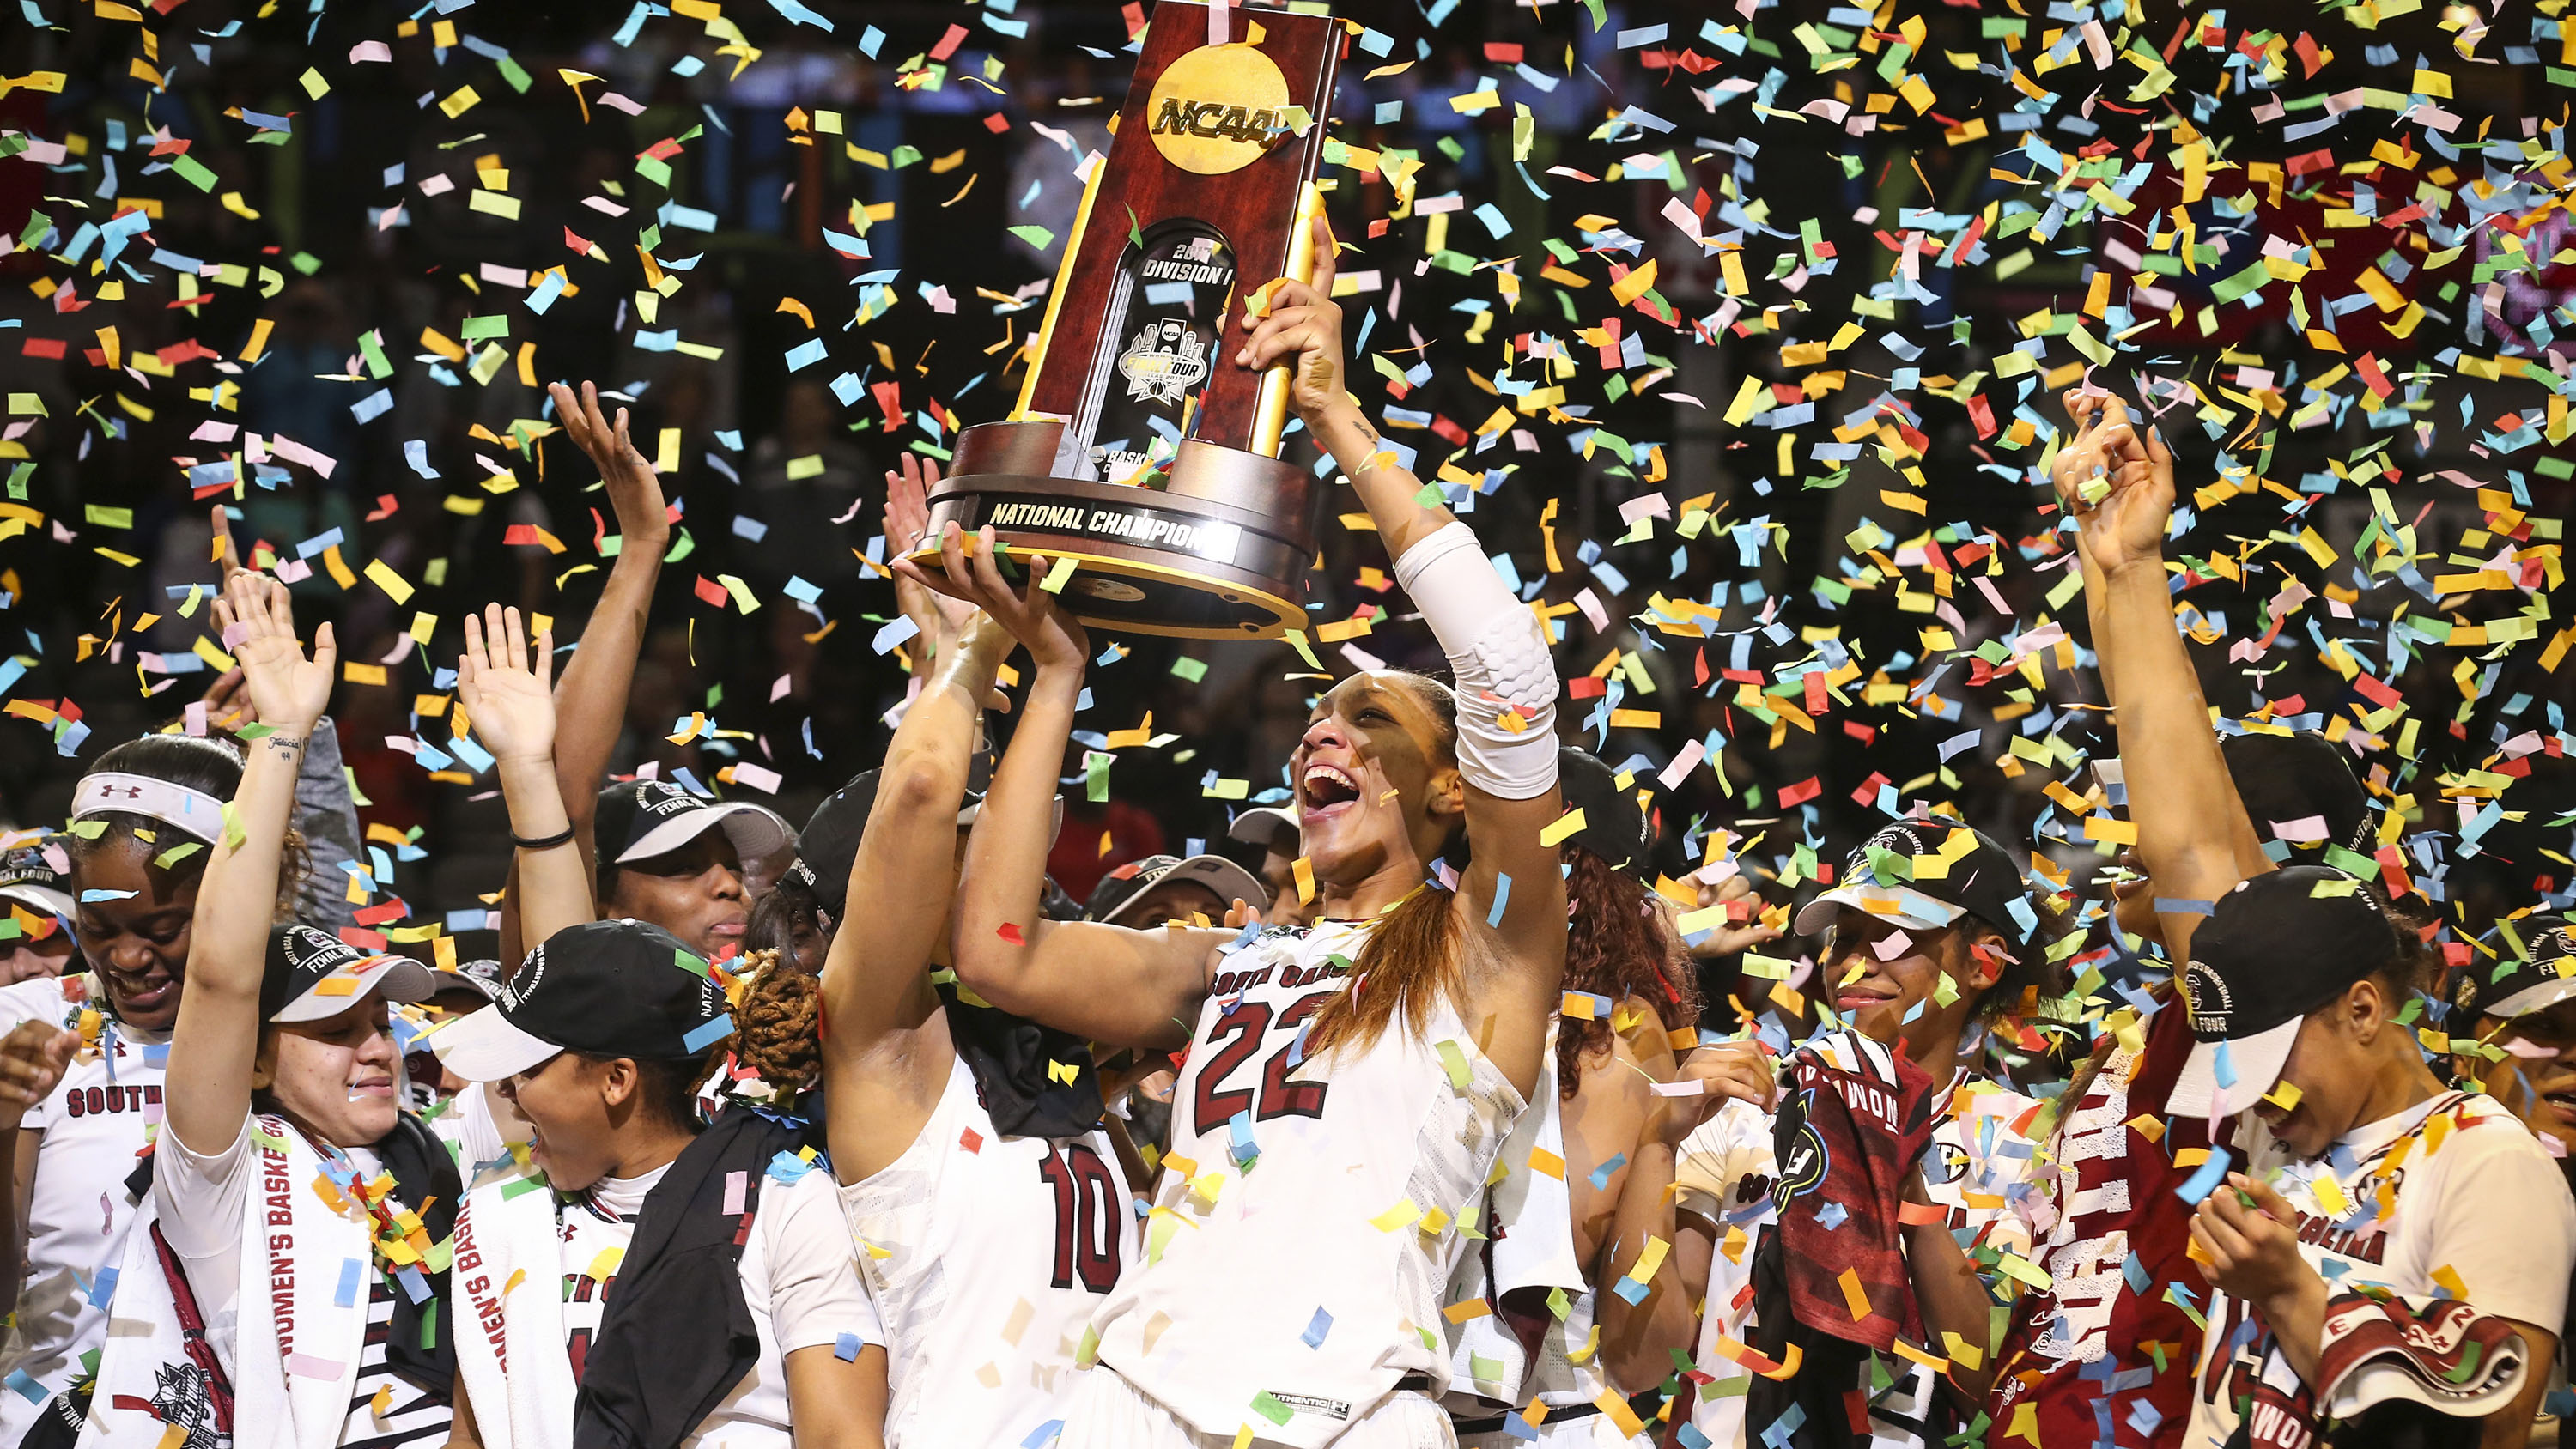 South Carolina brings home national championship, defeats Mississippi State